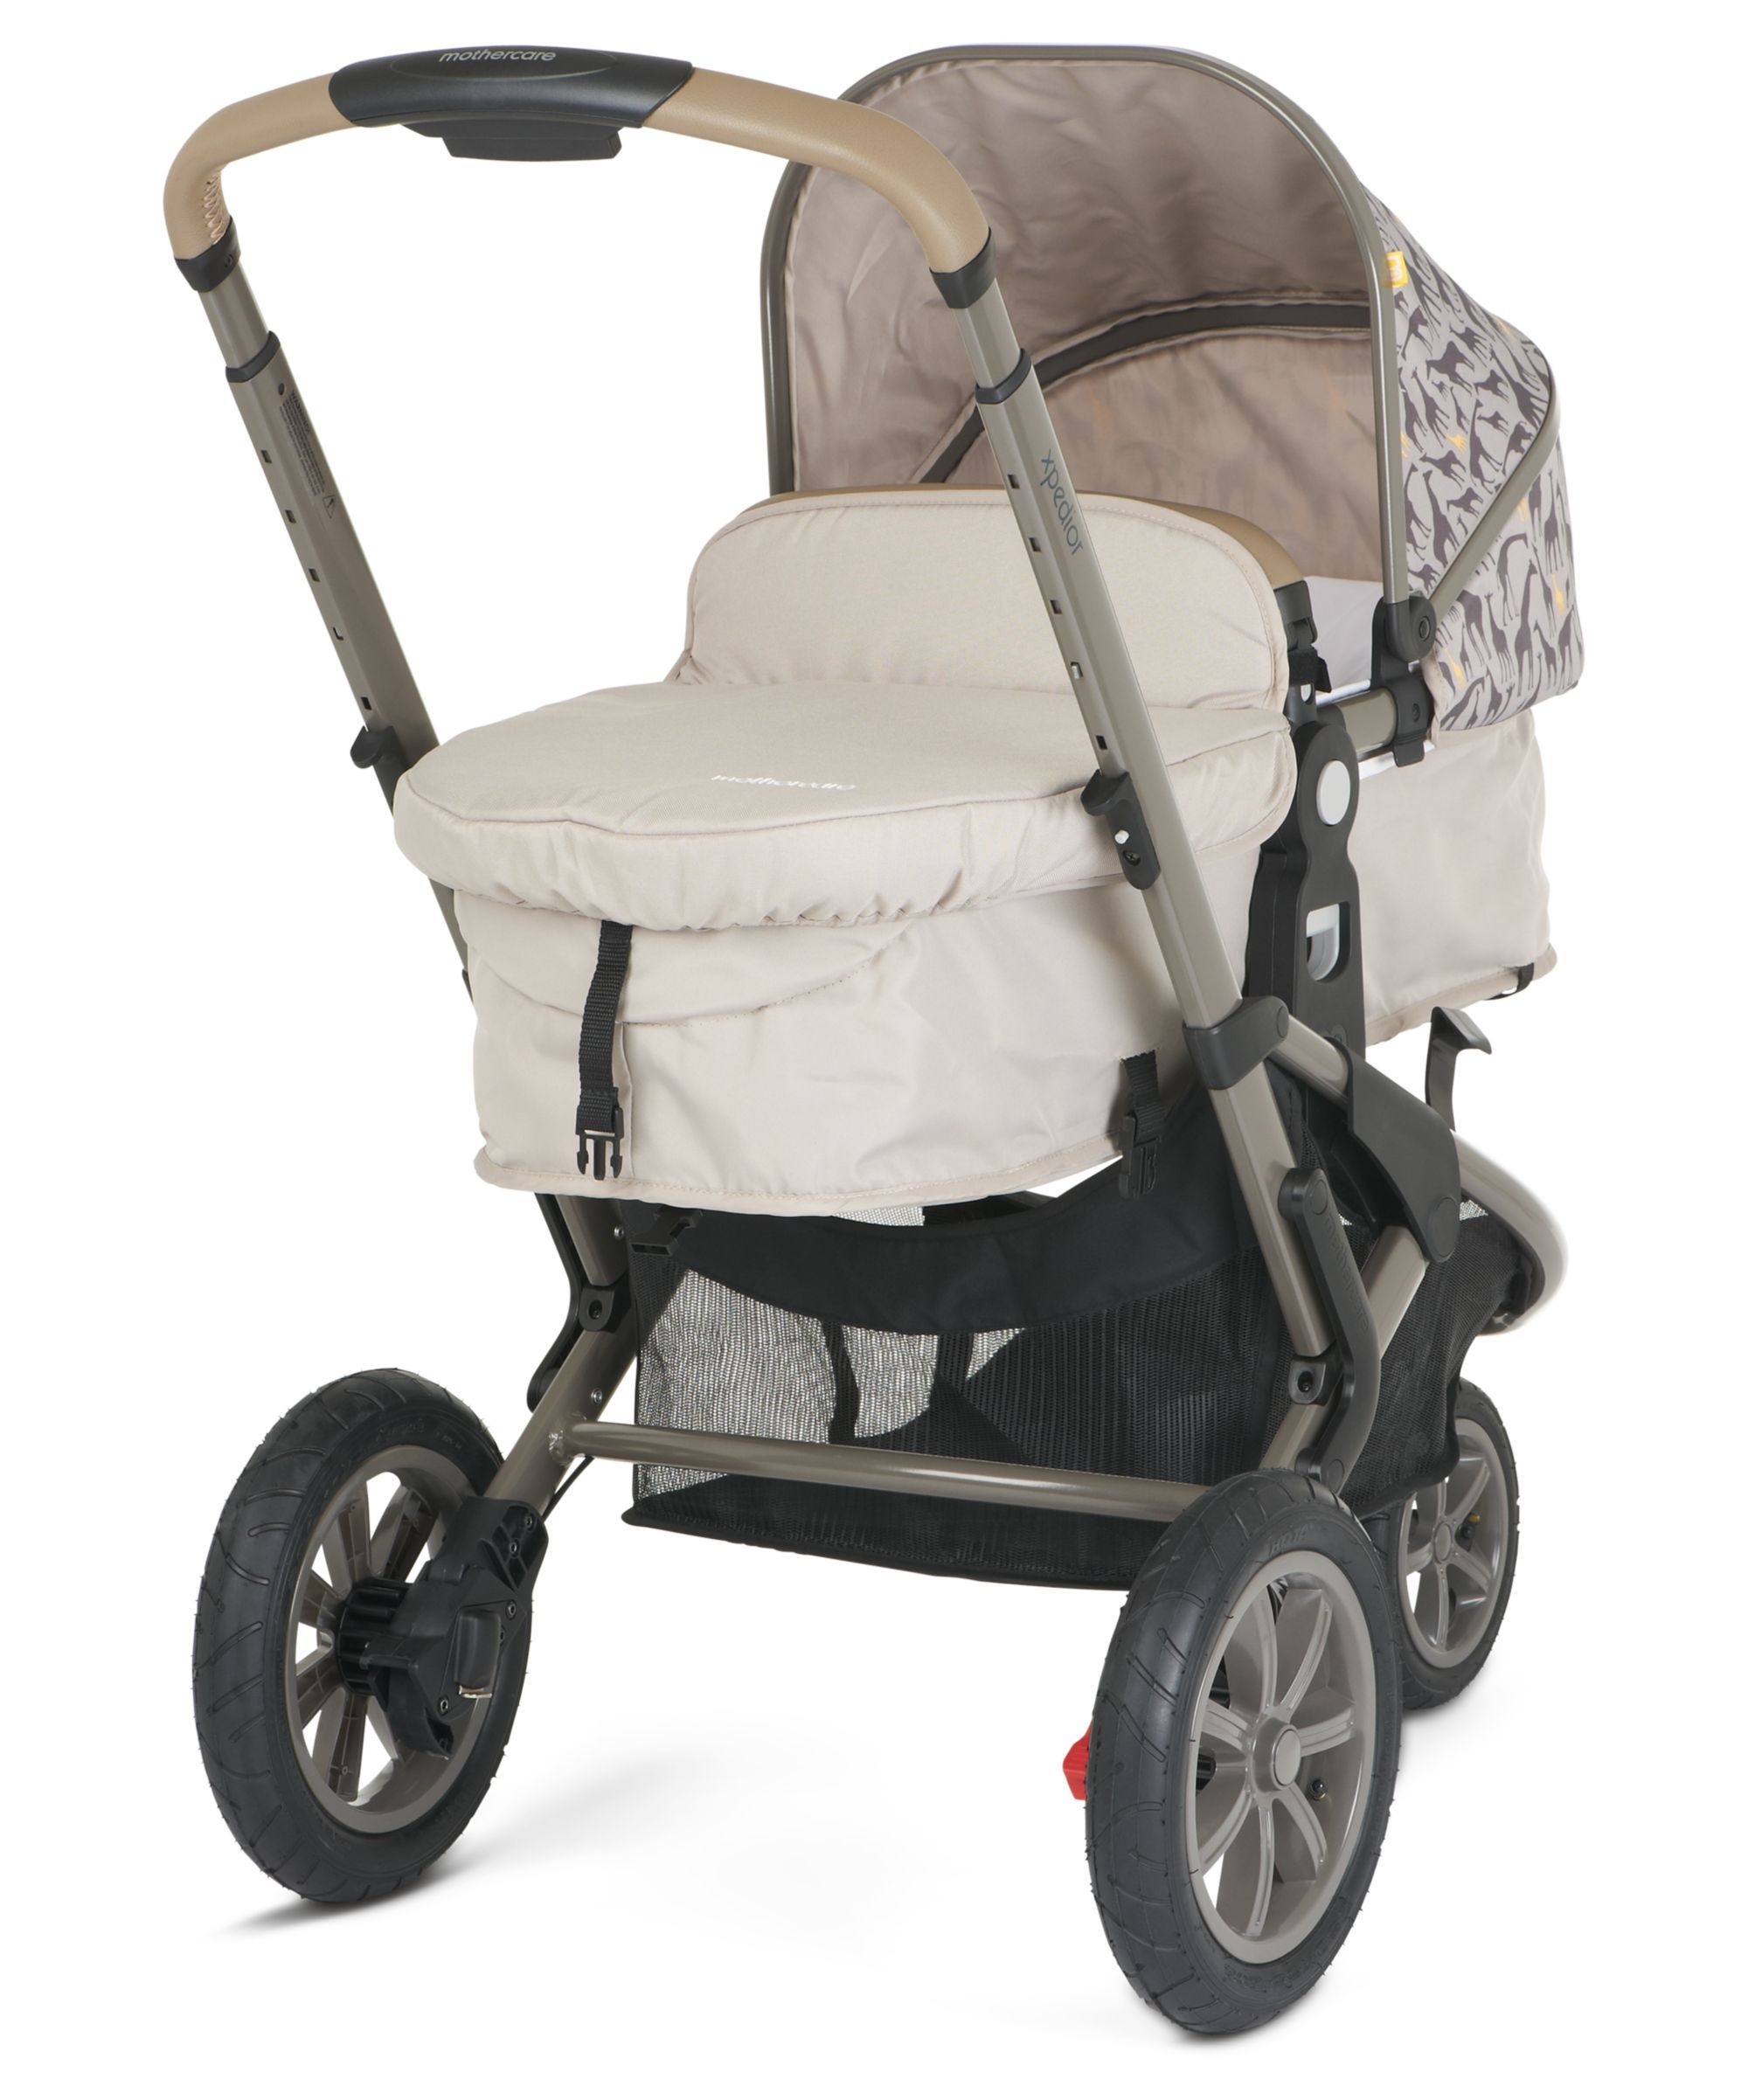 c70bb90a5922 Mothercare Xpedior Pram and Pushchair Travel System - Tusk Special Edition